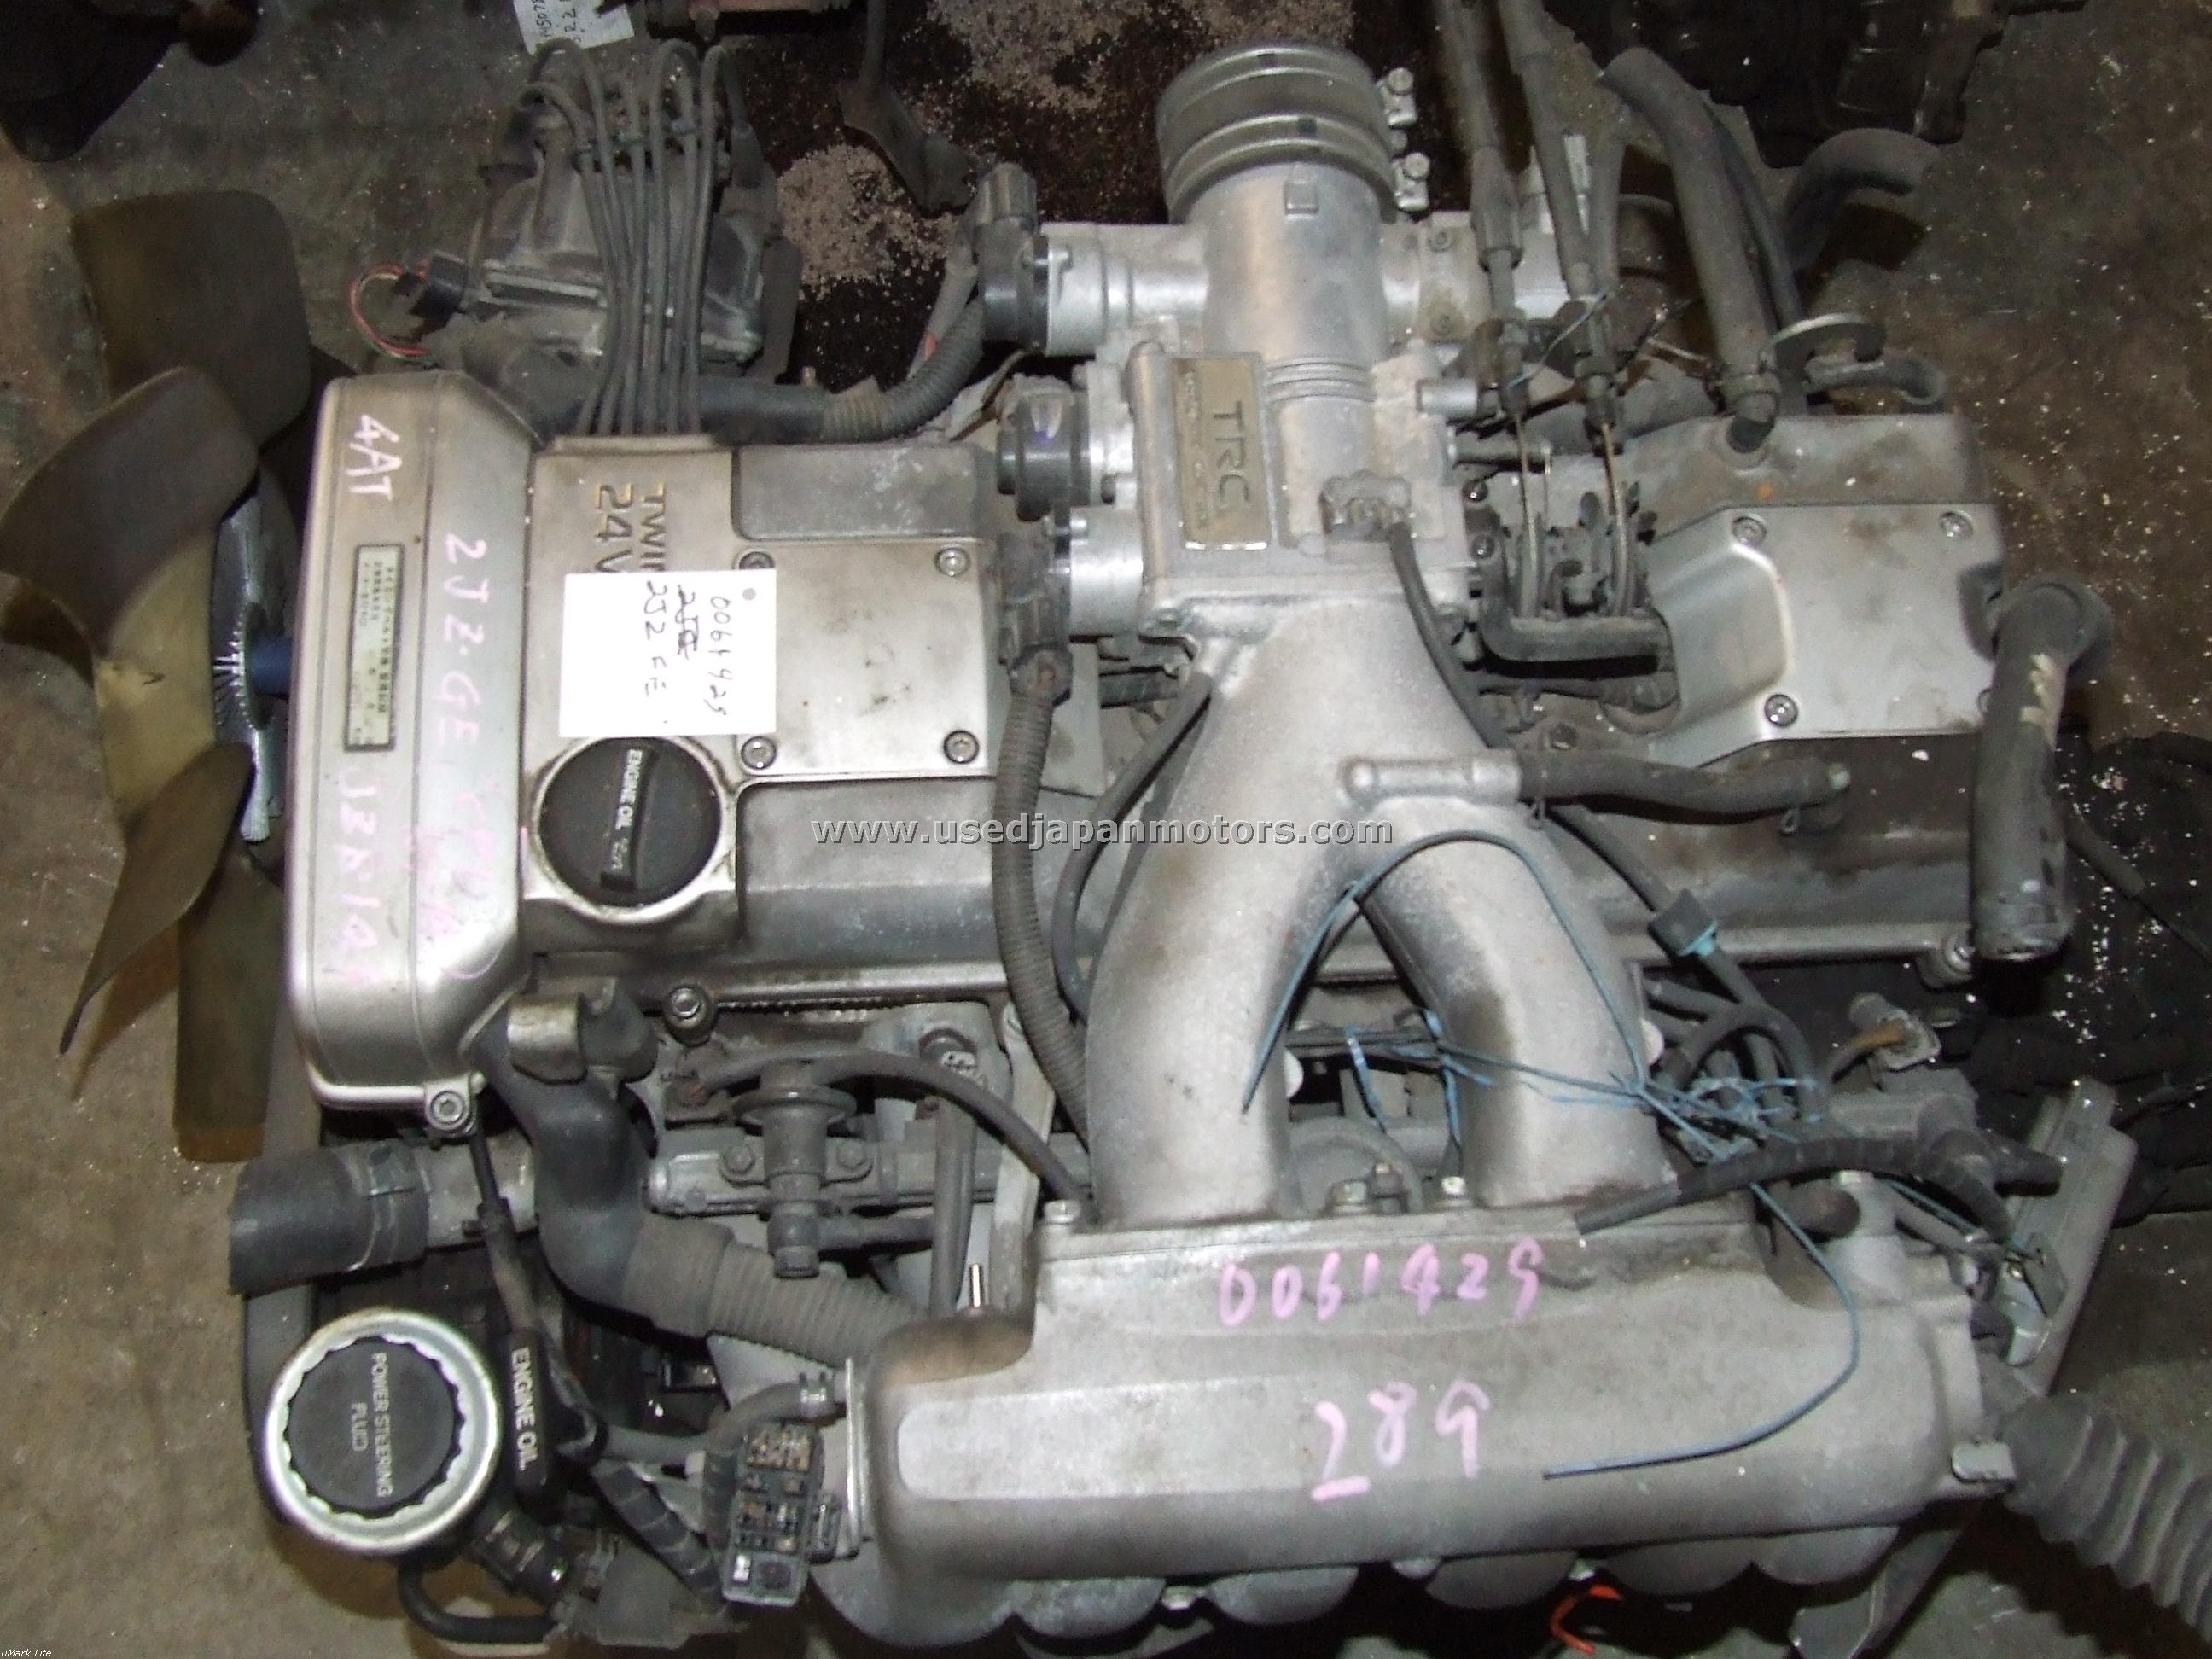 2003 Lexus Ls 430 Engine Diagram Wiring Diagrams Gs 2002 Ls430 Subaru Forester Is 300 Limousine